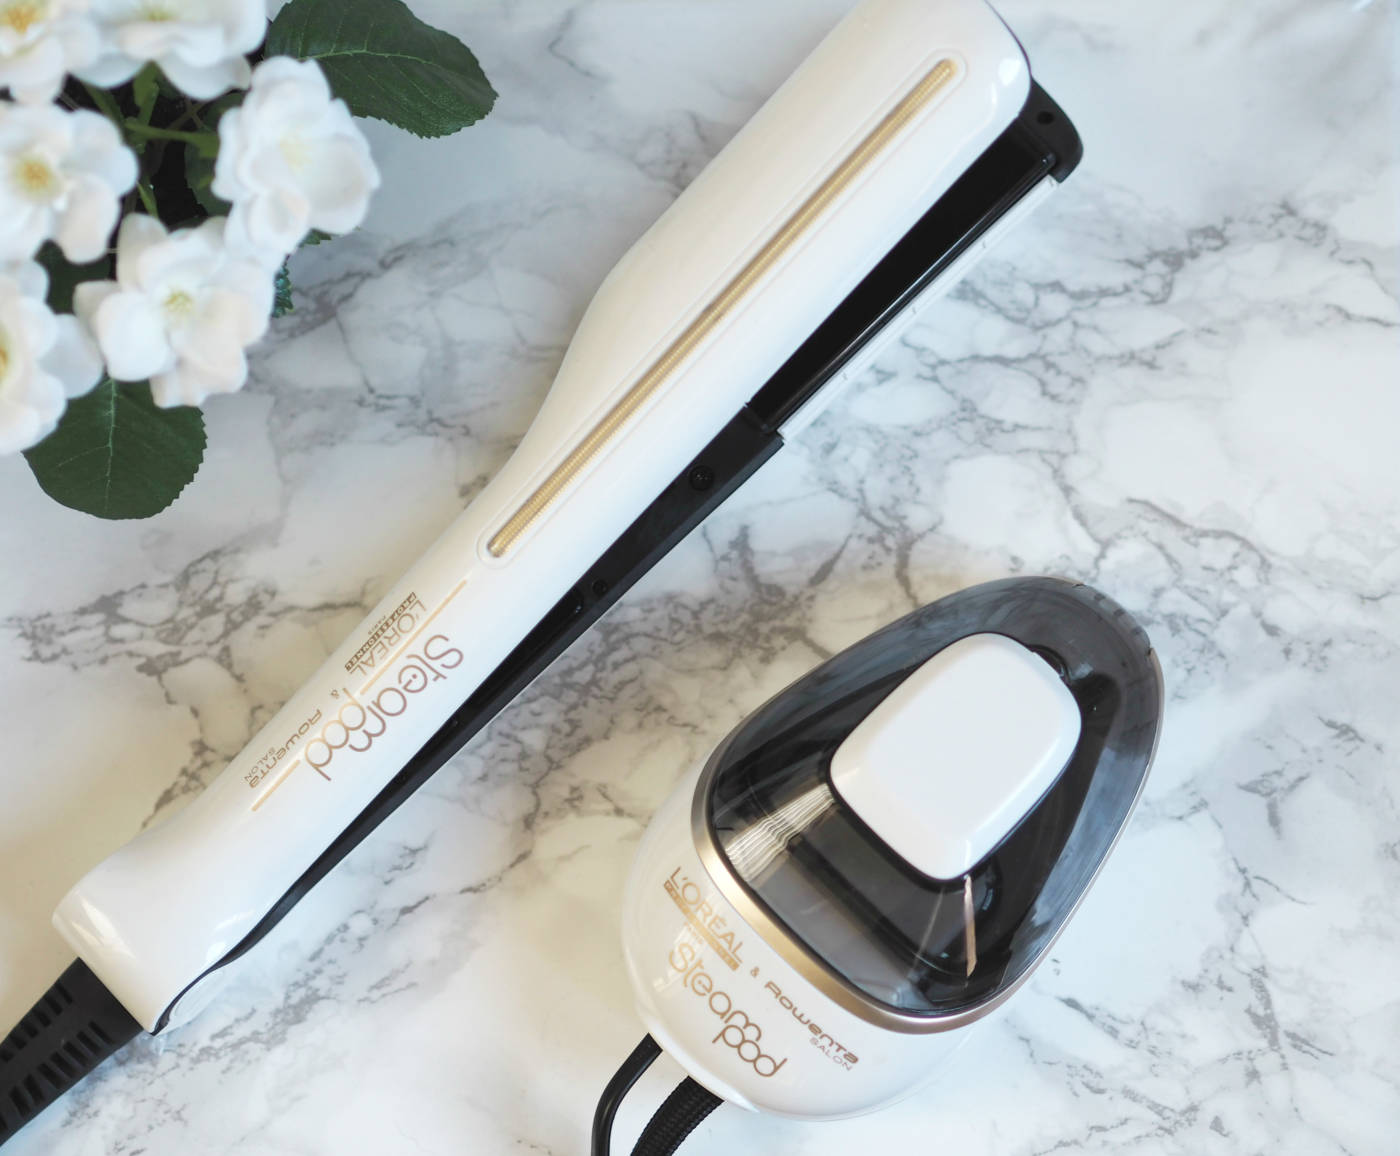 Loreal Professional Steampod Review Through Chelseas Eyes